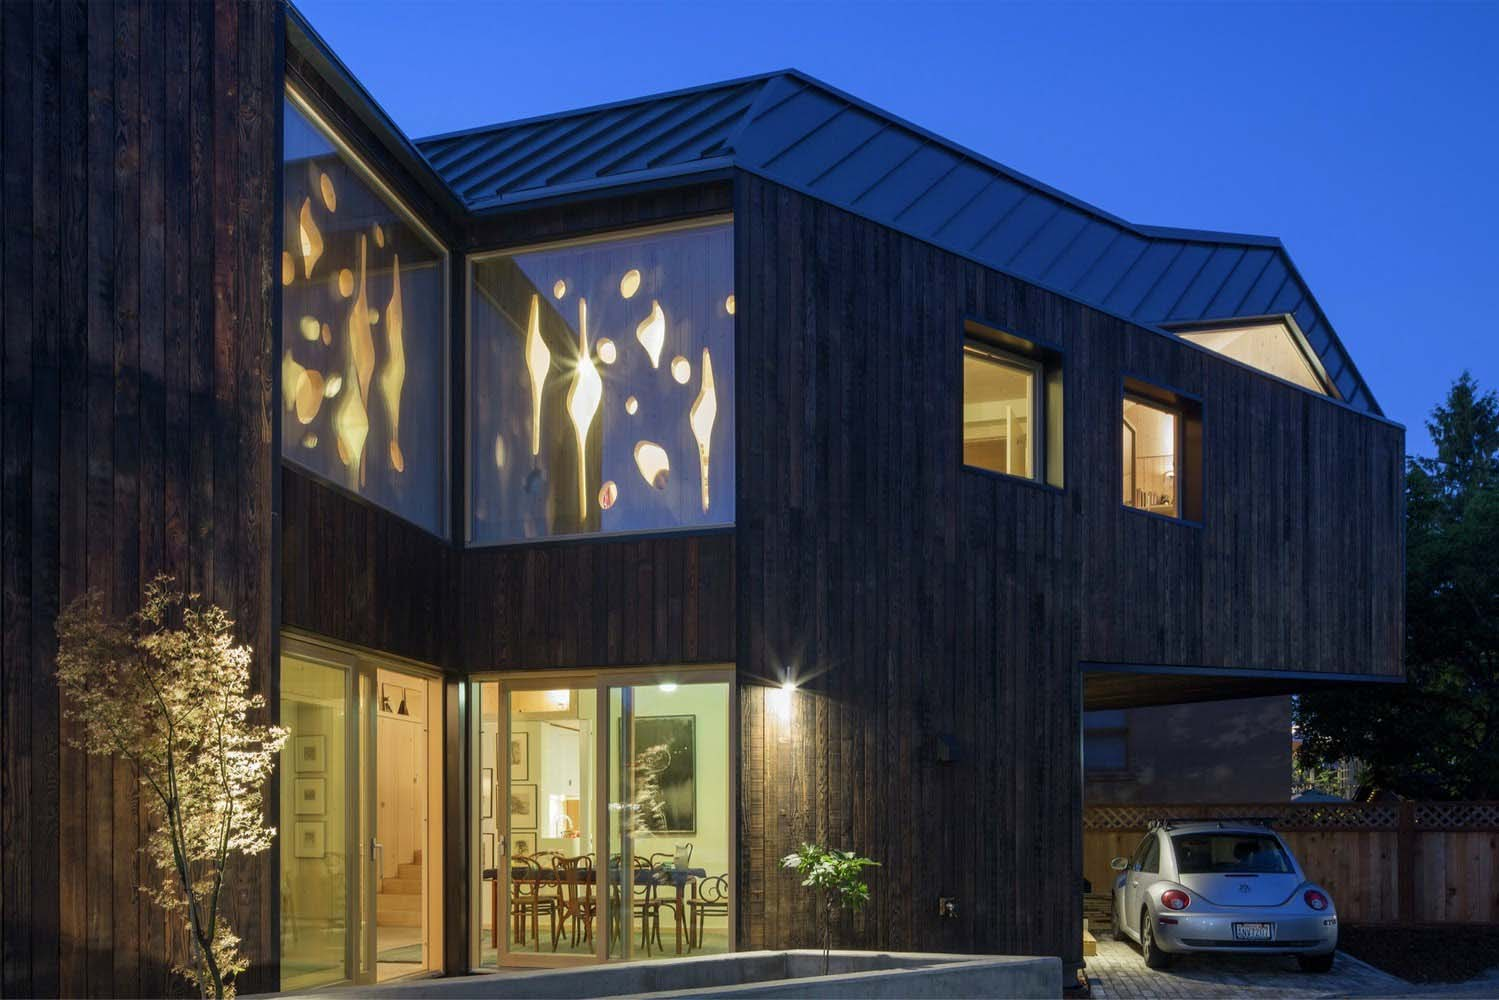 A beautiful wooden house